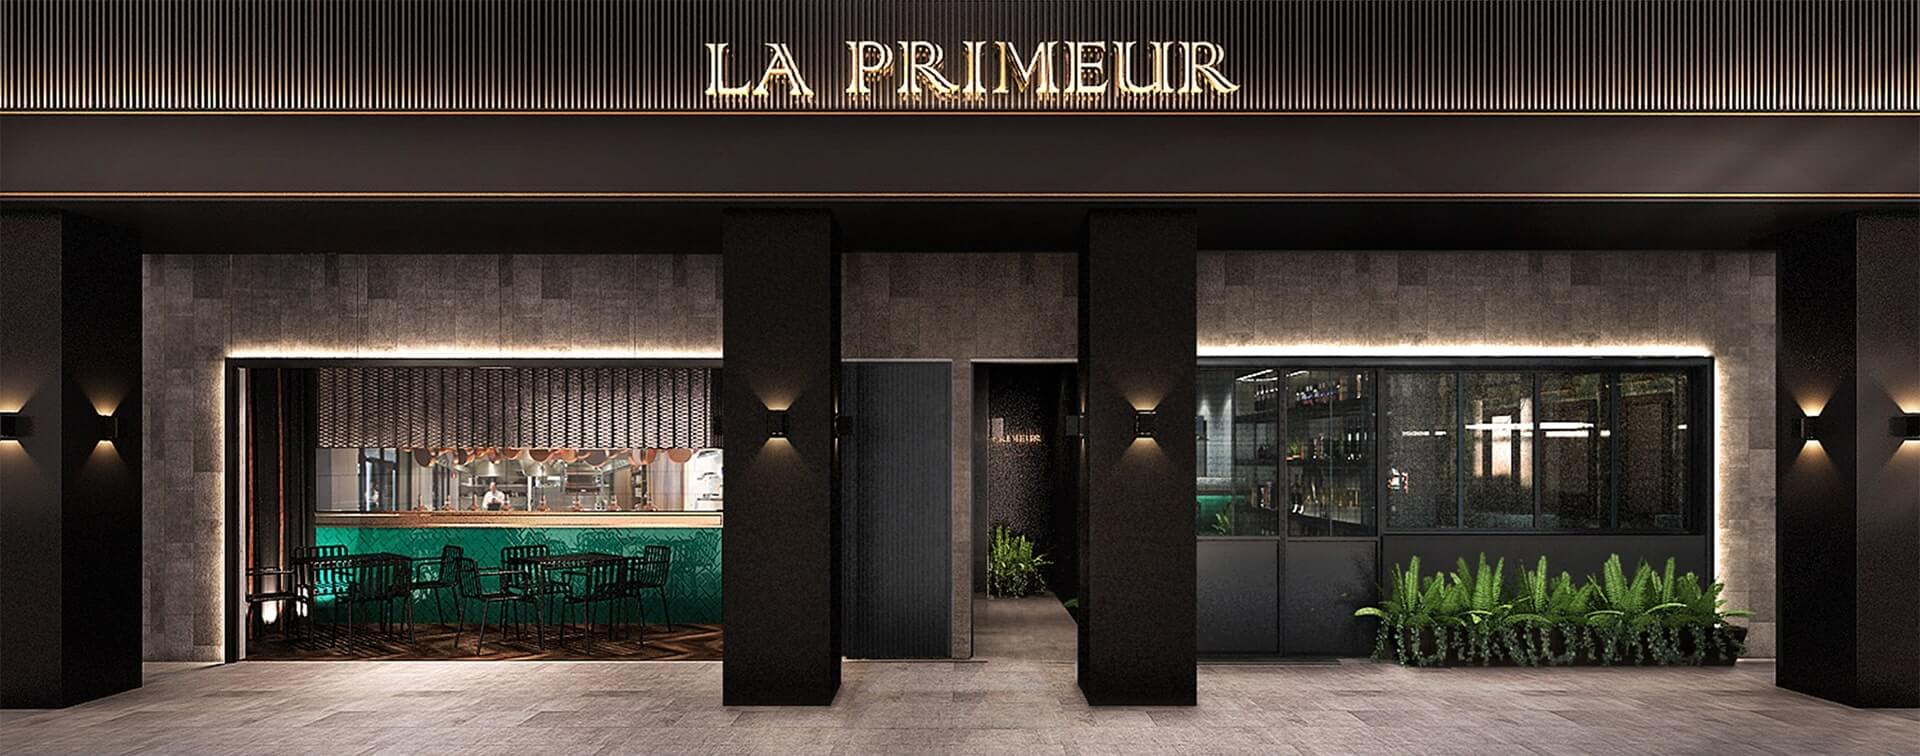 LA PRIMEUR RESTAURANT BAR